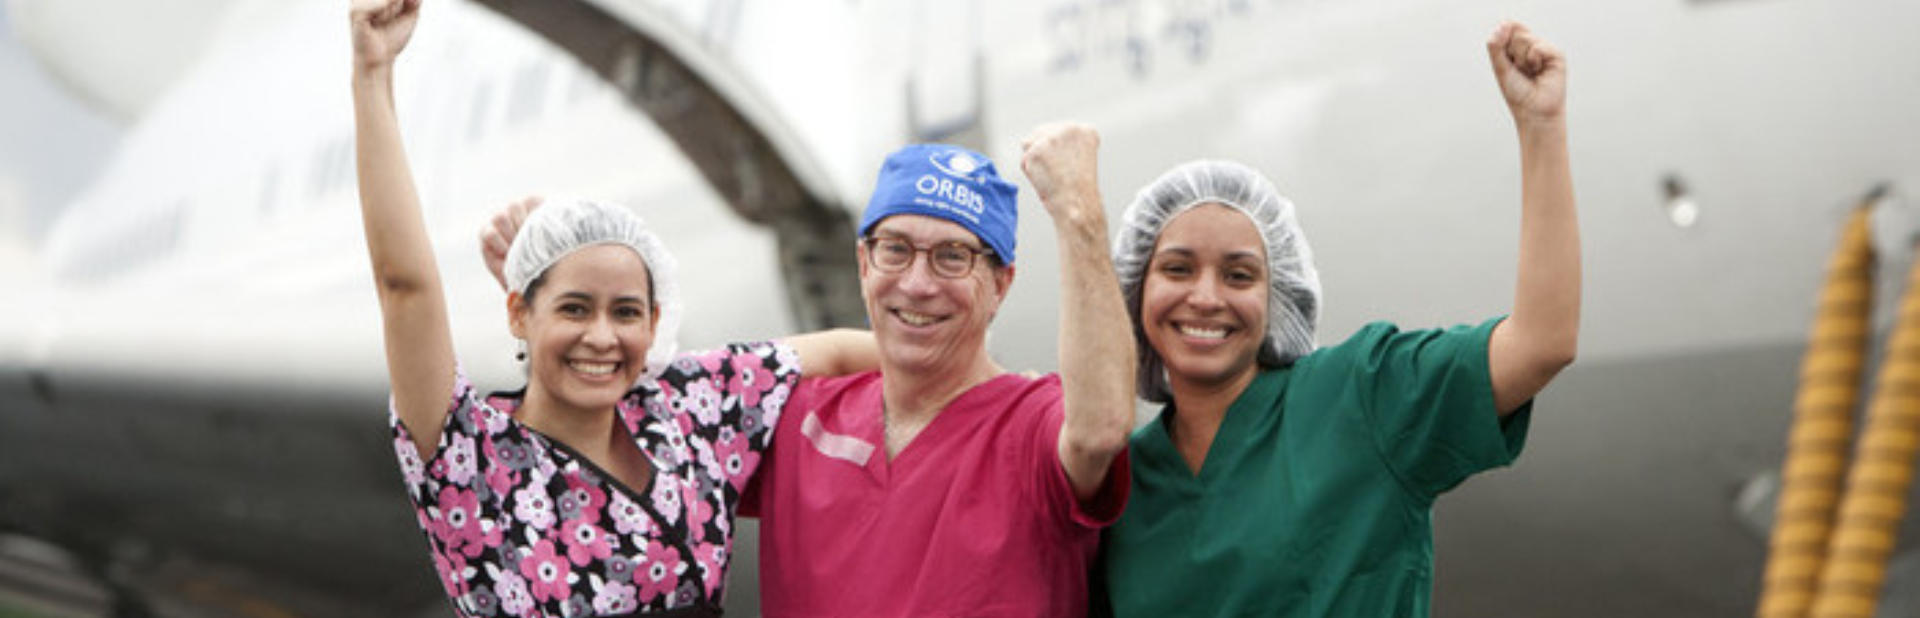 Orbis Volunteer And Oculoplastics Specialist Dr  James Oestreicher Center Worked Side By Side With Panamanian Physicians Yael Chavez Left And Ivonne Alvarado  Chavez Practices Oculoplastic Surgery